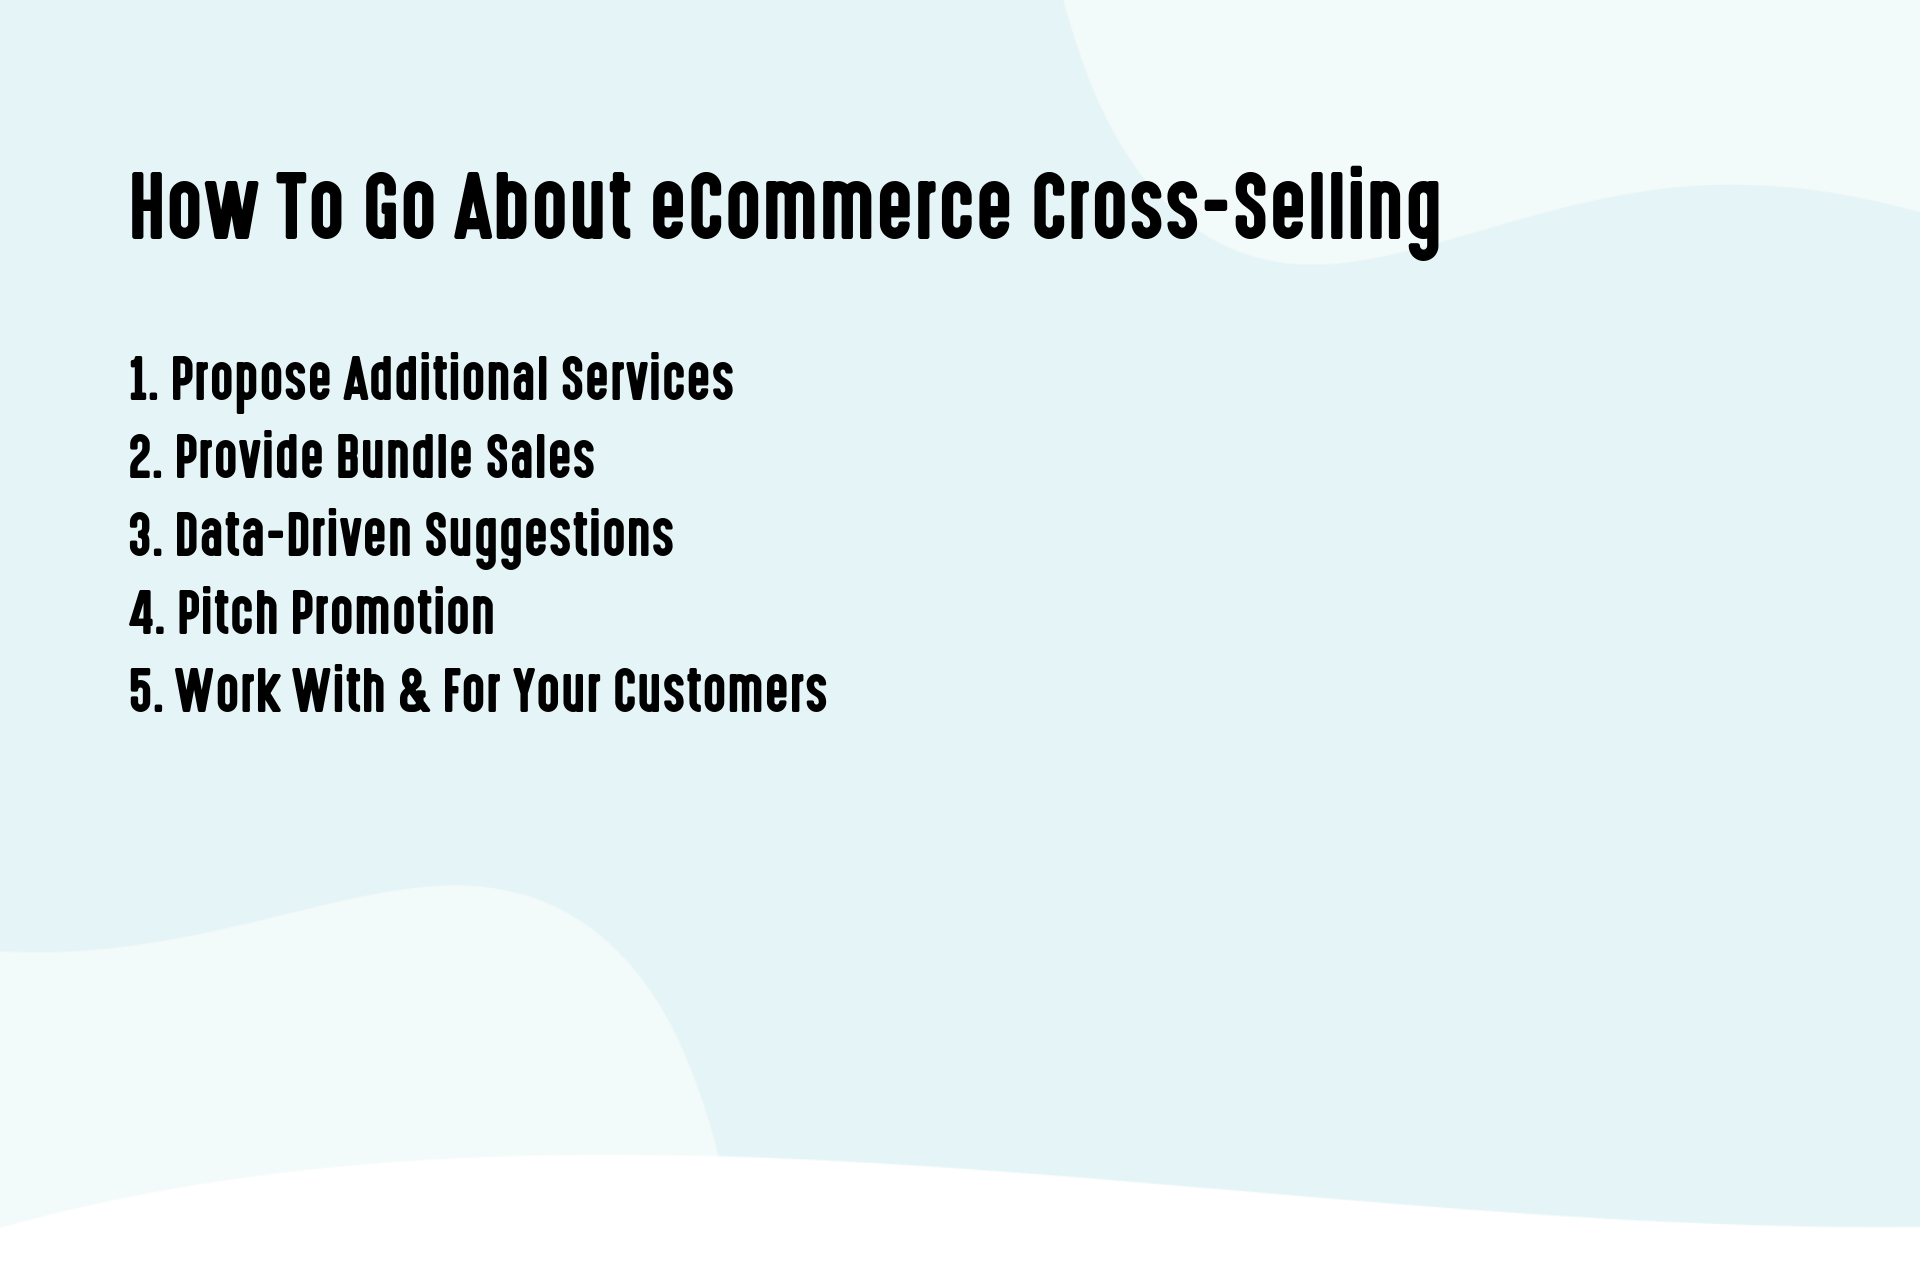 How To Go About eCommerce Cross-Selling